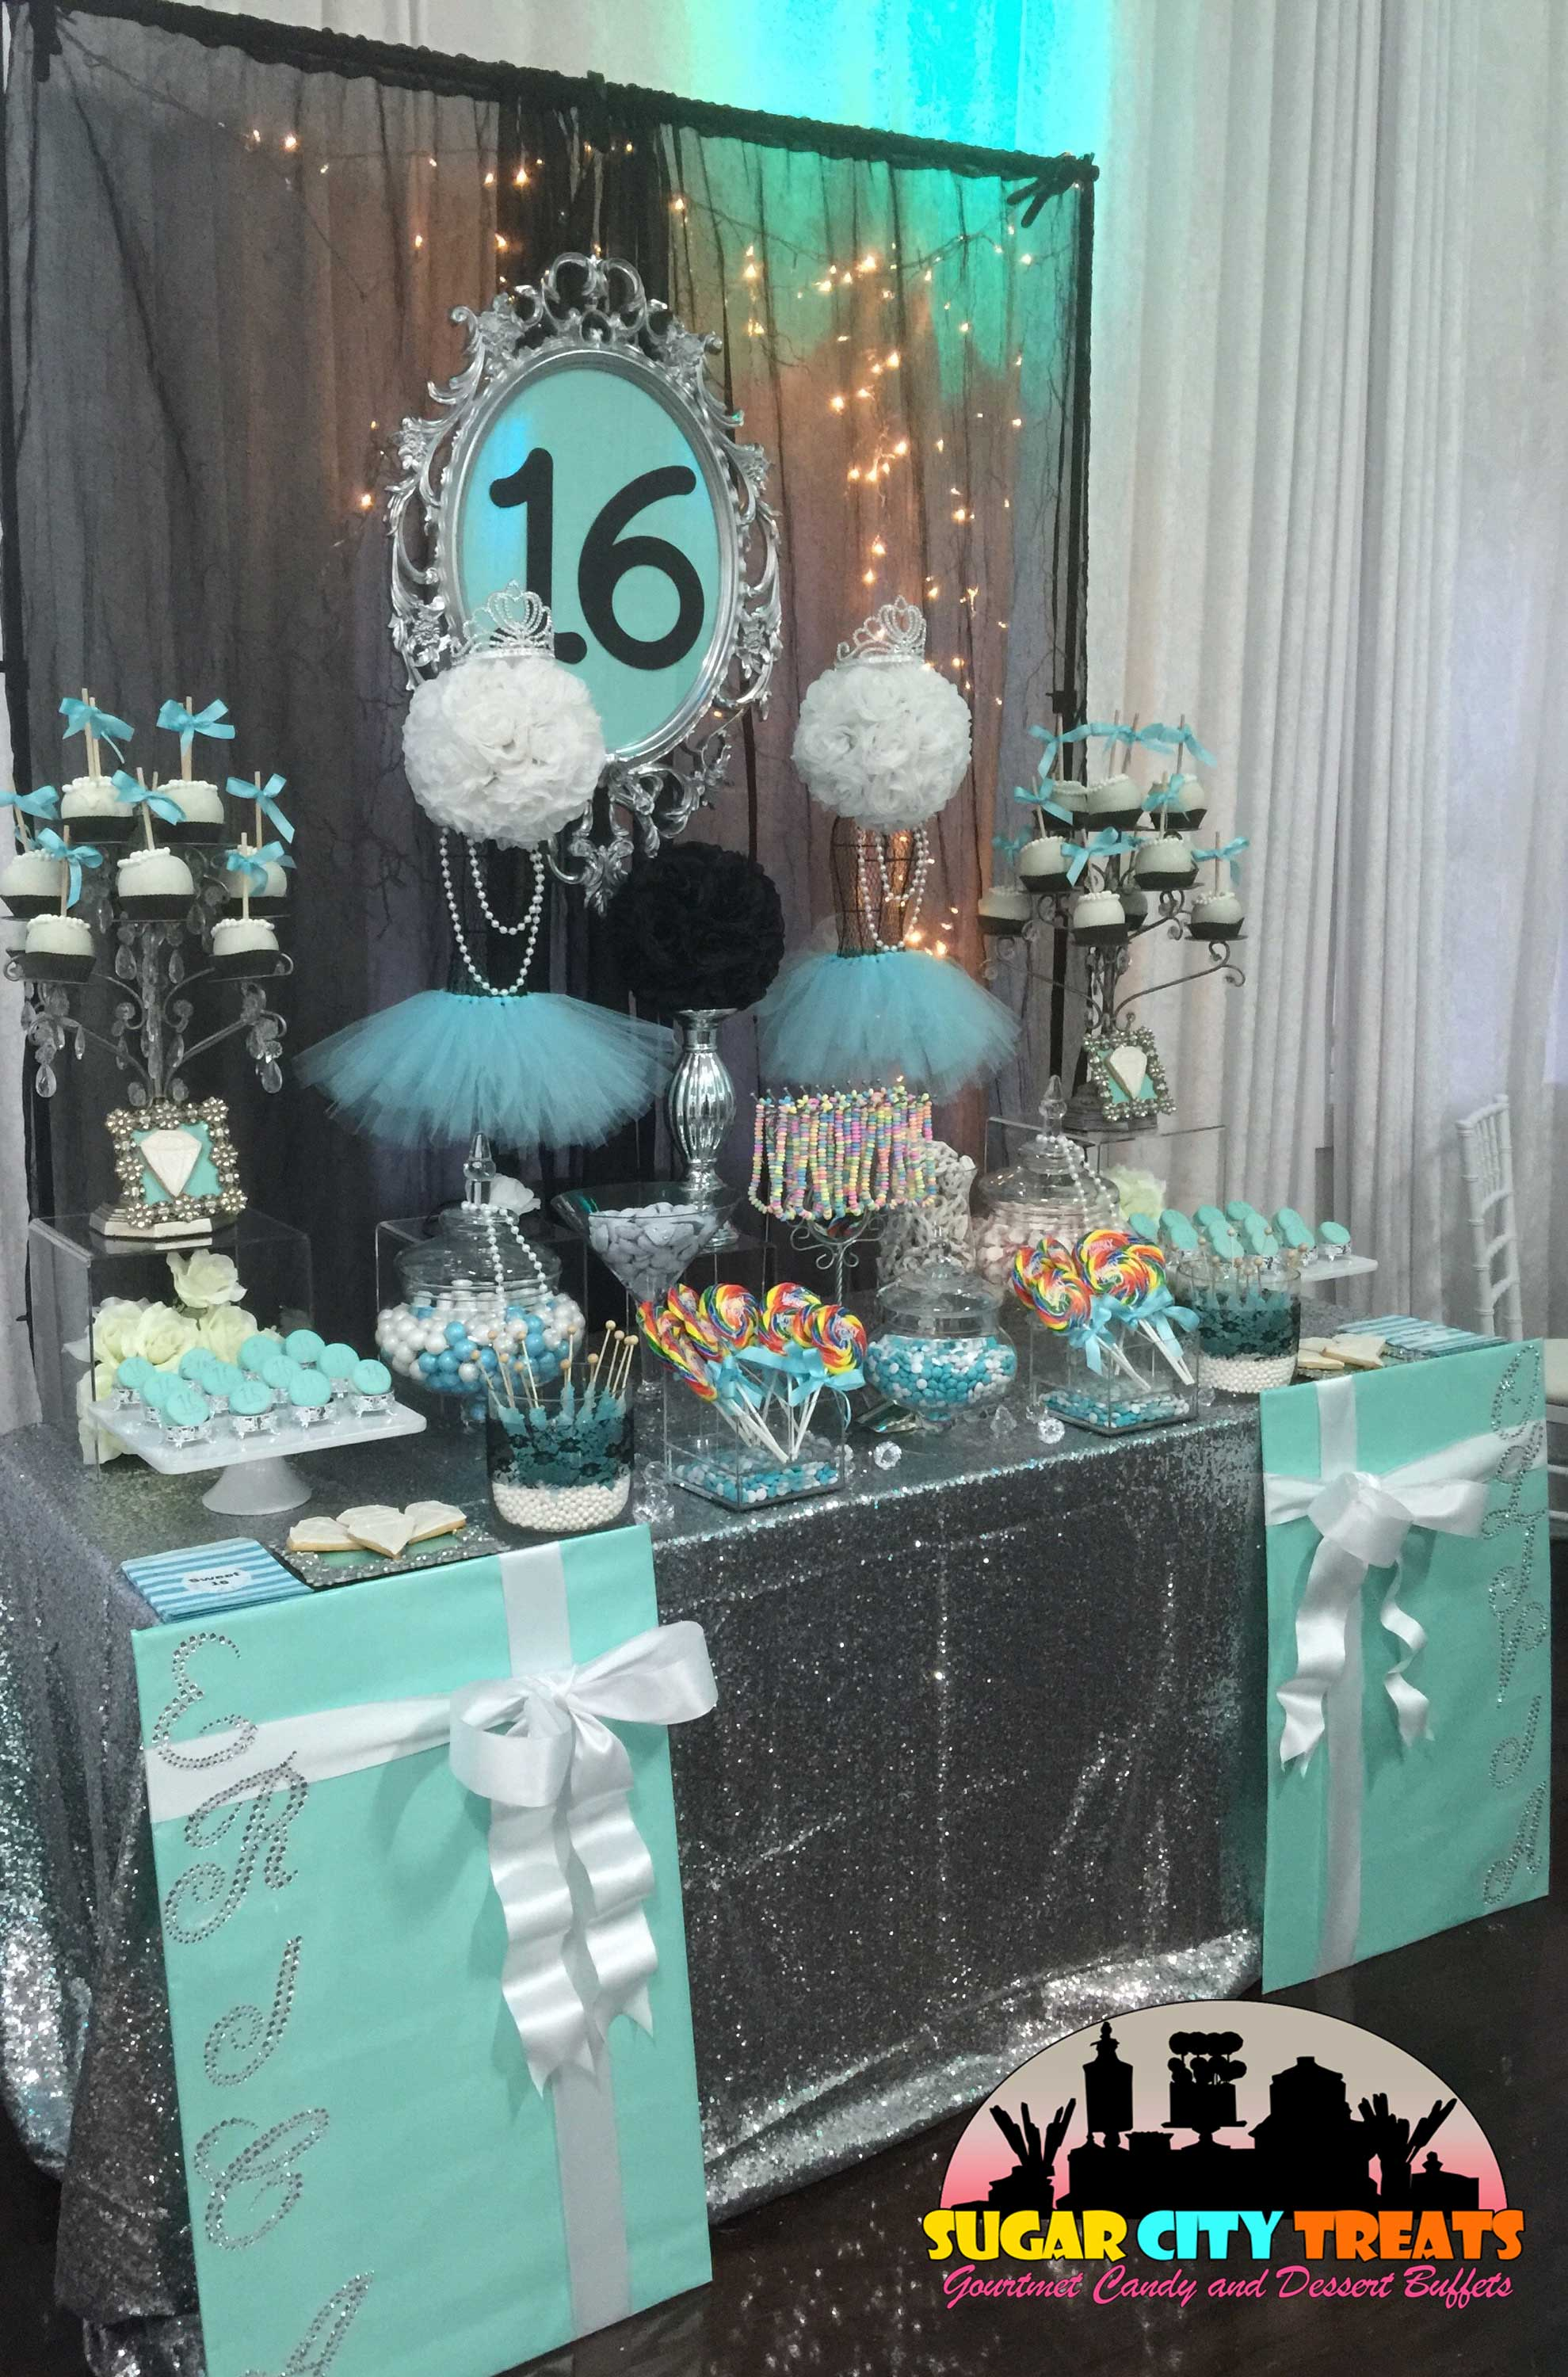 Surprising Candy Buffet For Birthday Party Great Prices Home Interior And Landscaping Ponolsignezvosmurscom